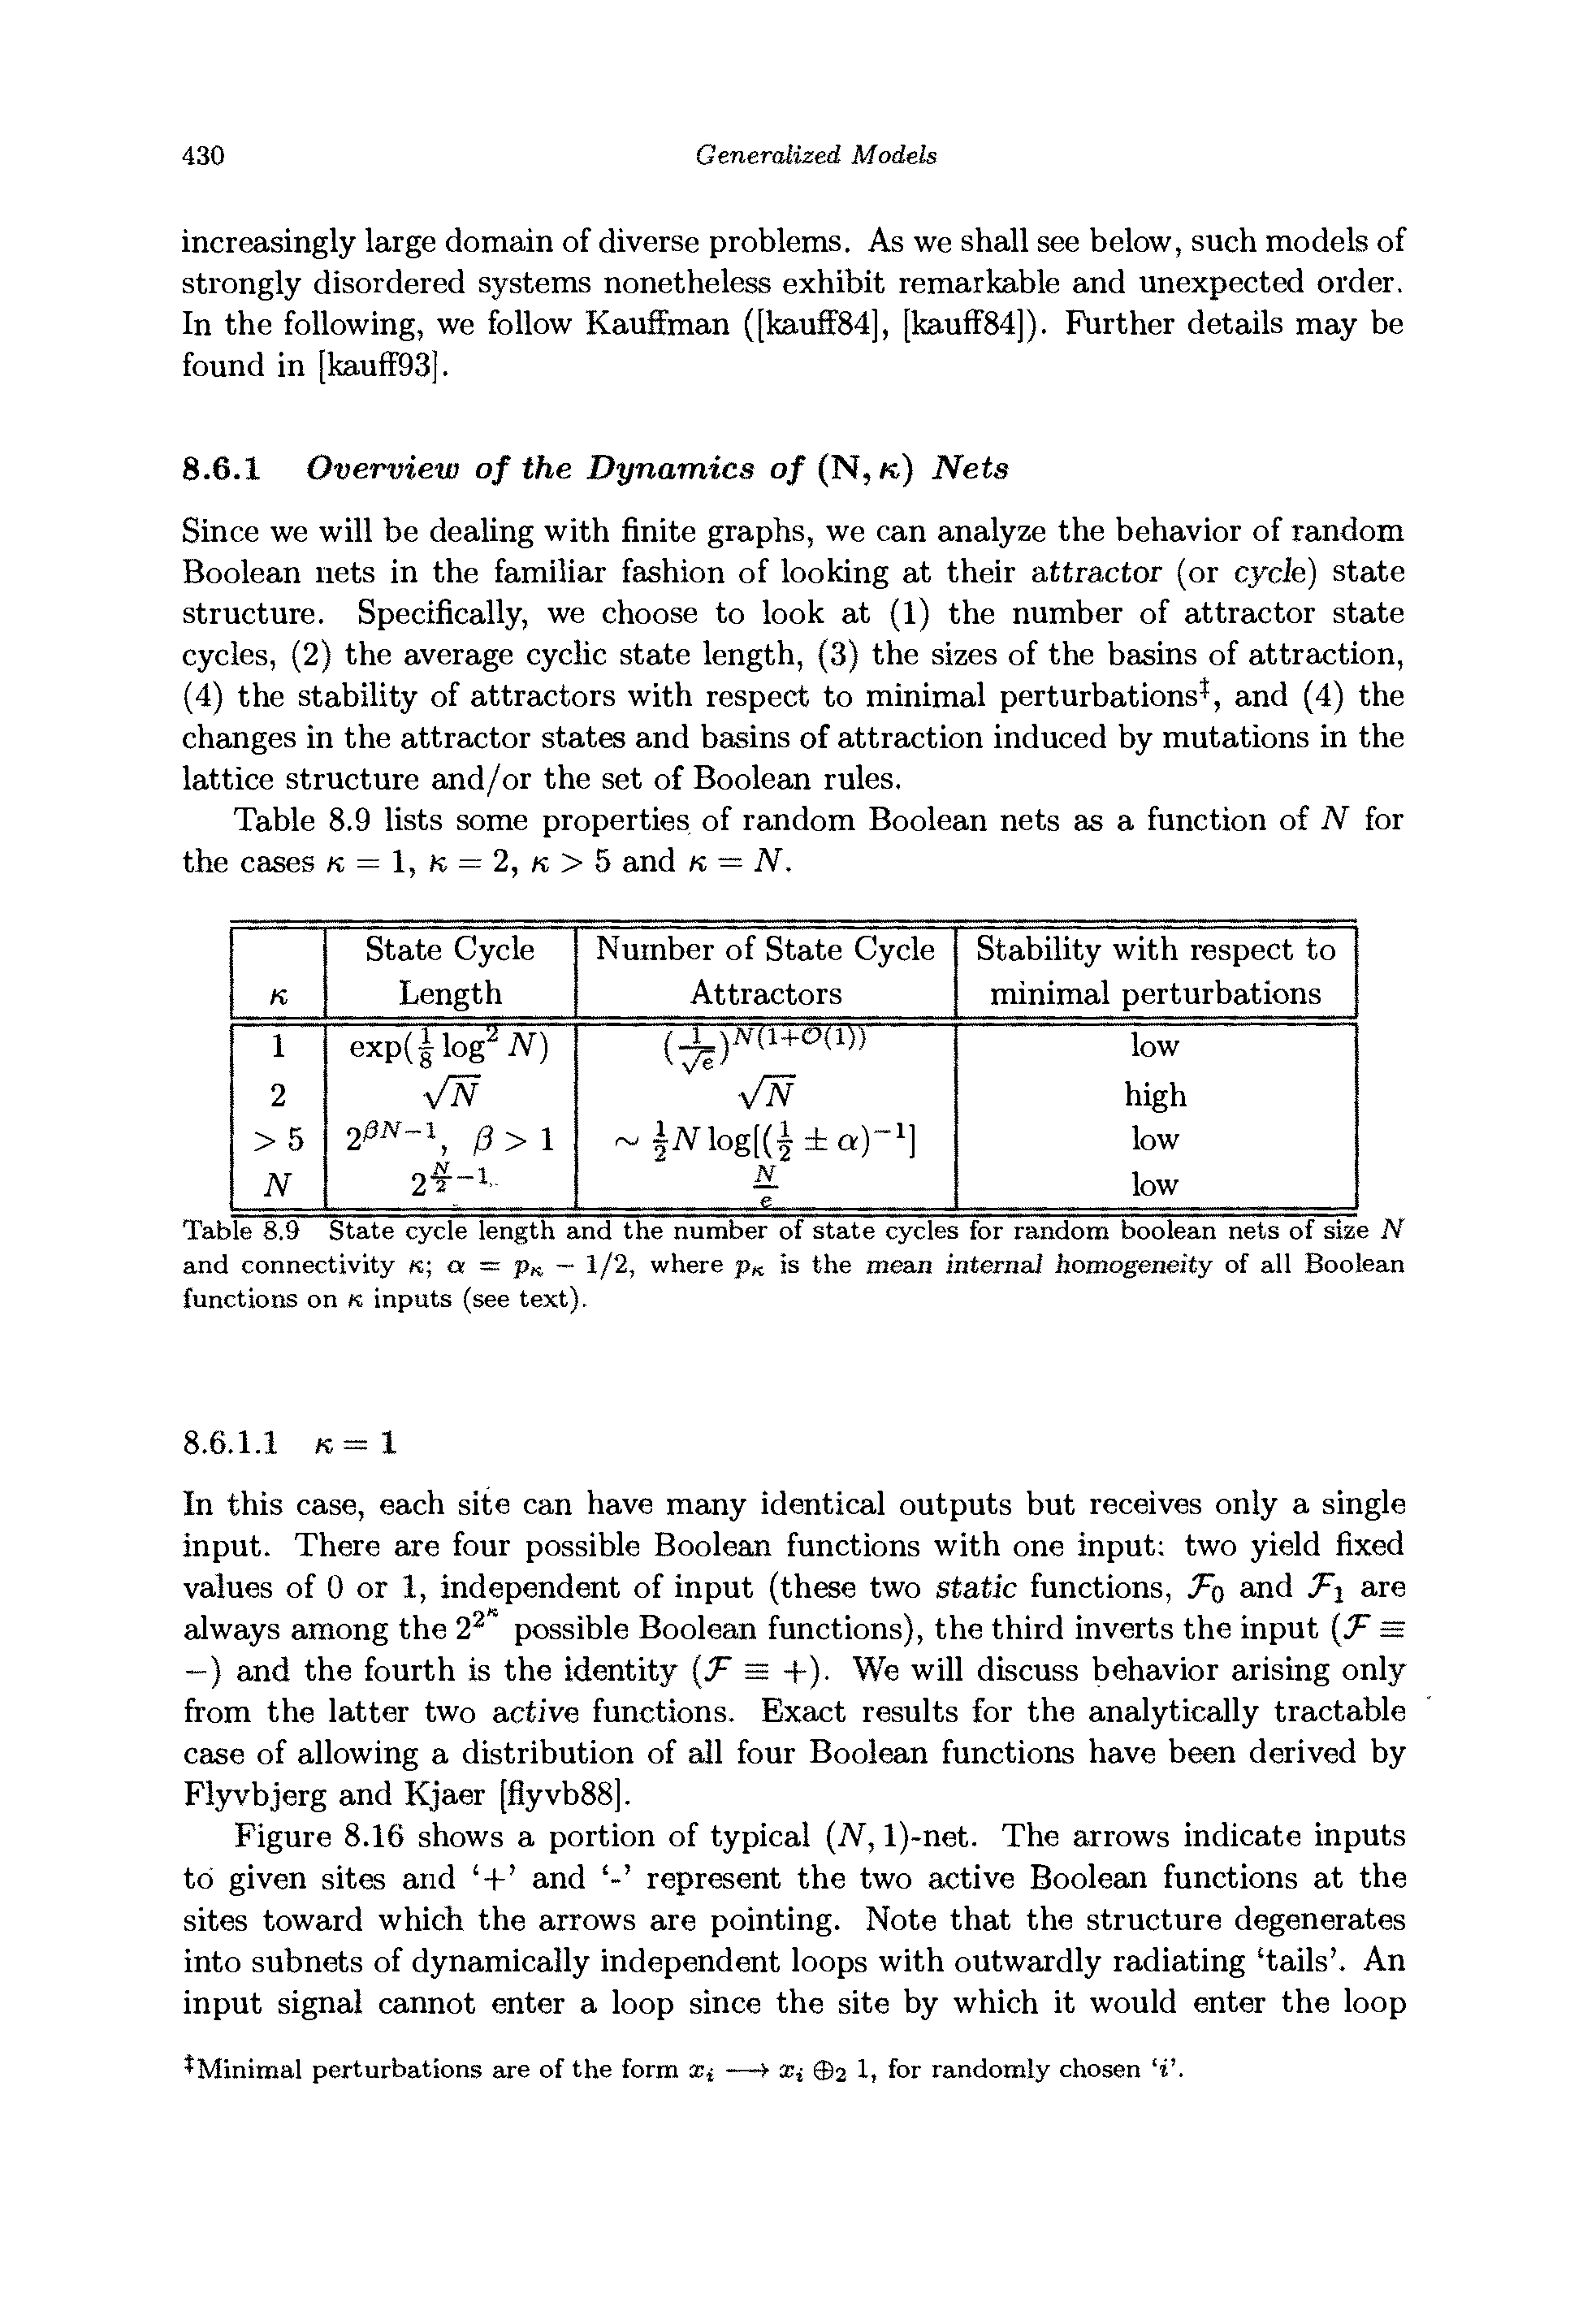 Table 8.9 State cycle length and the number of state cycles for random boolean nets of size N and connectivity k a = pn — 1/2, where Pk is the mean internal homogeneity of all Boolean functions on K inputs (see text).